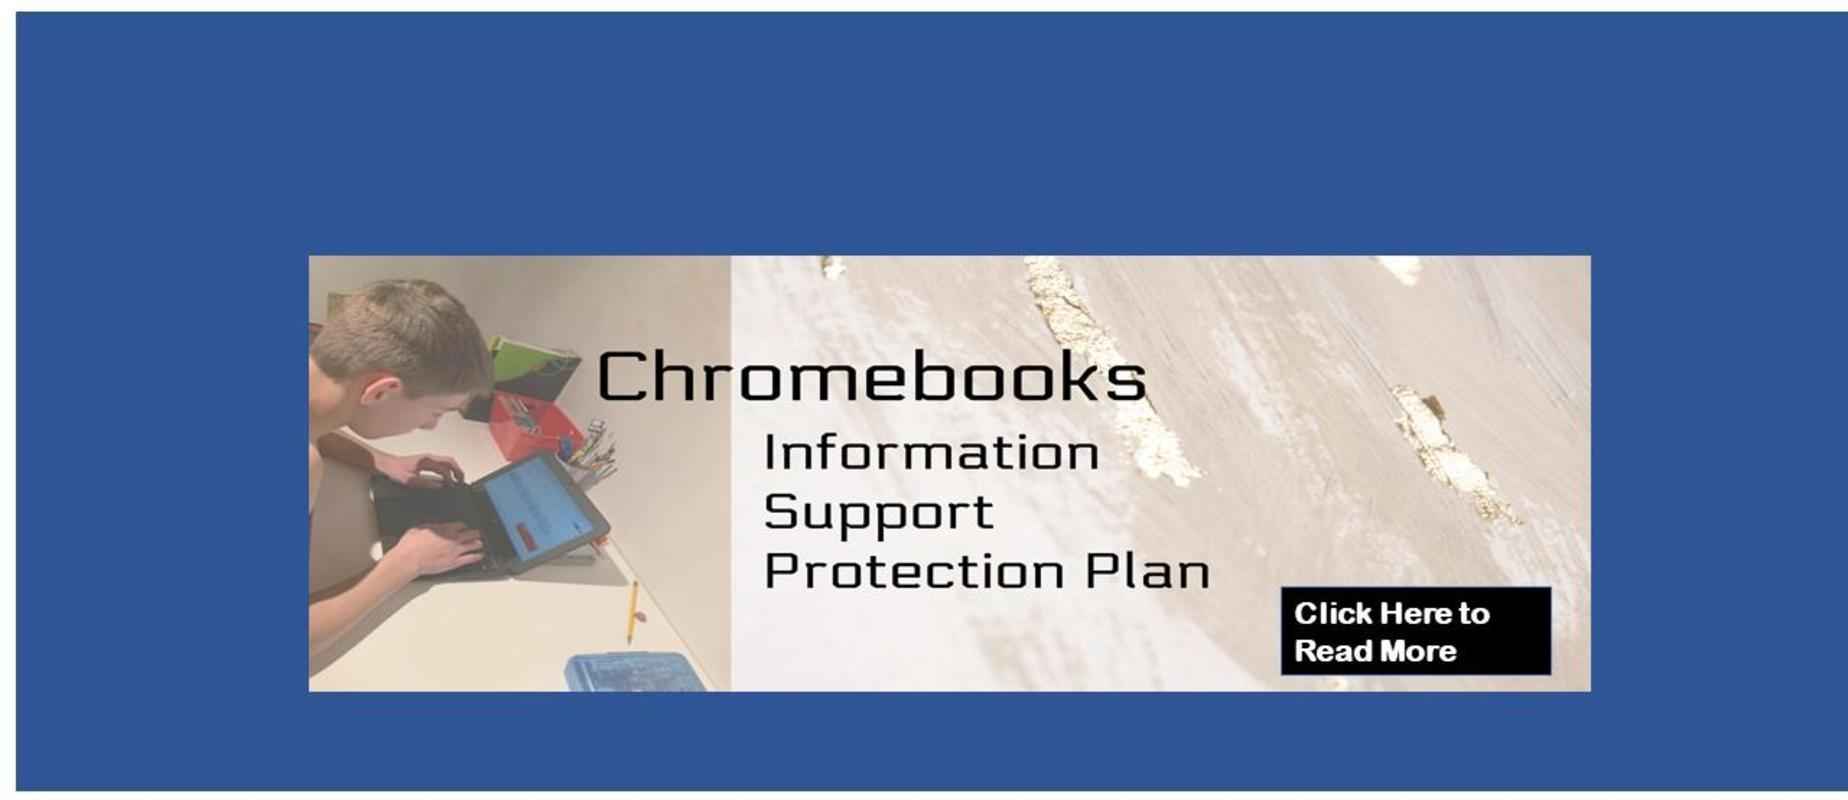 Chromebooks:  Information, Support, Protection Plan